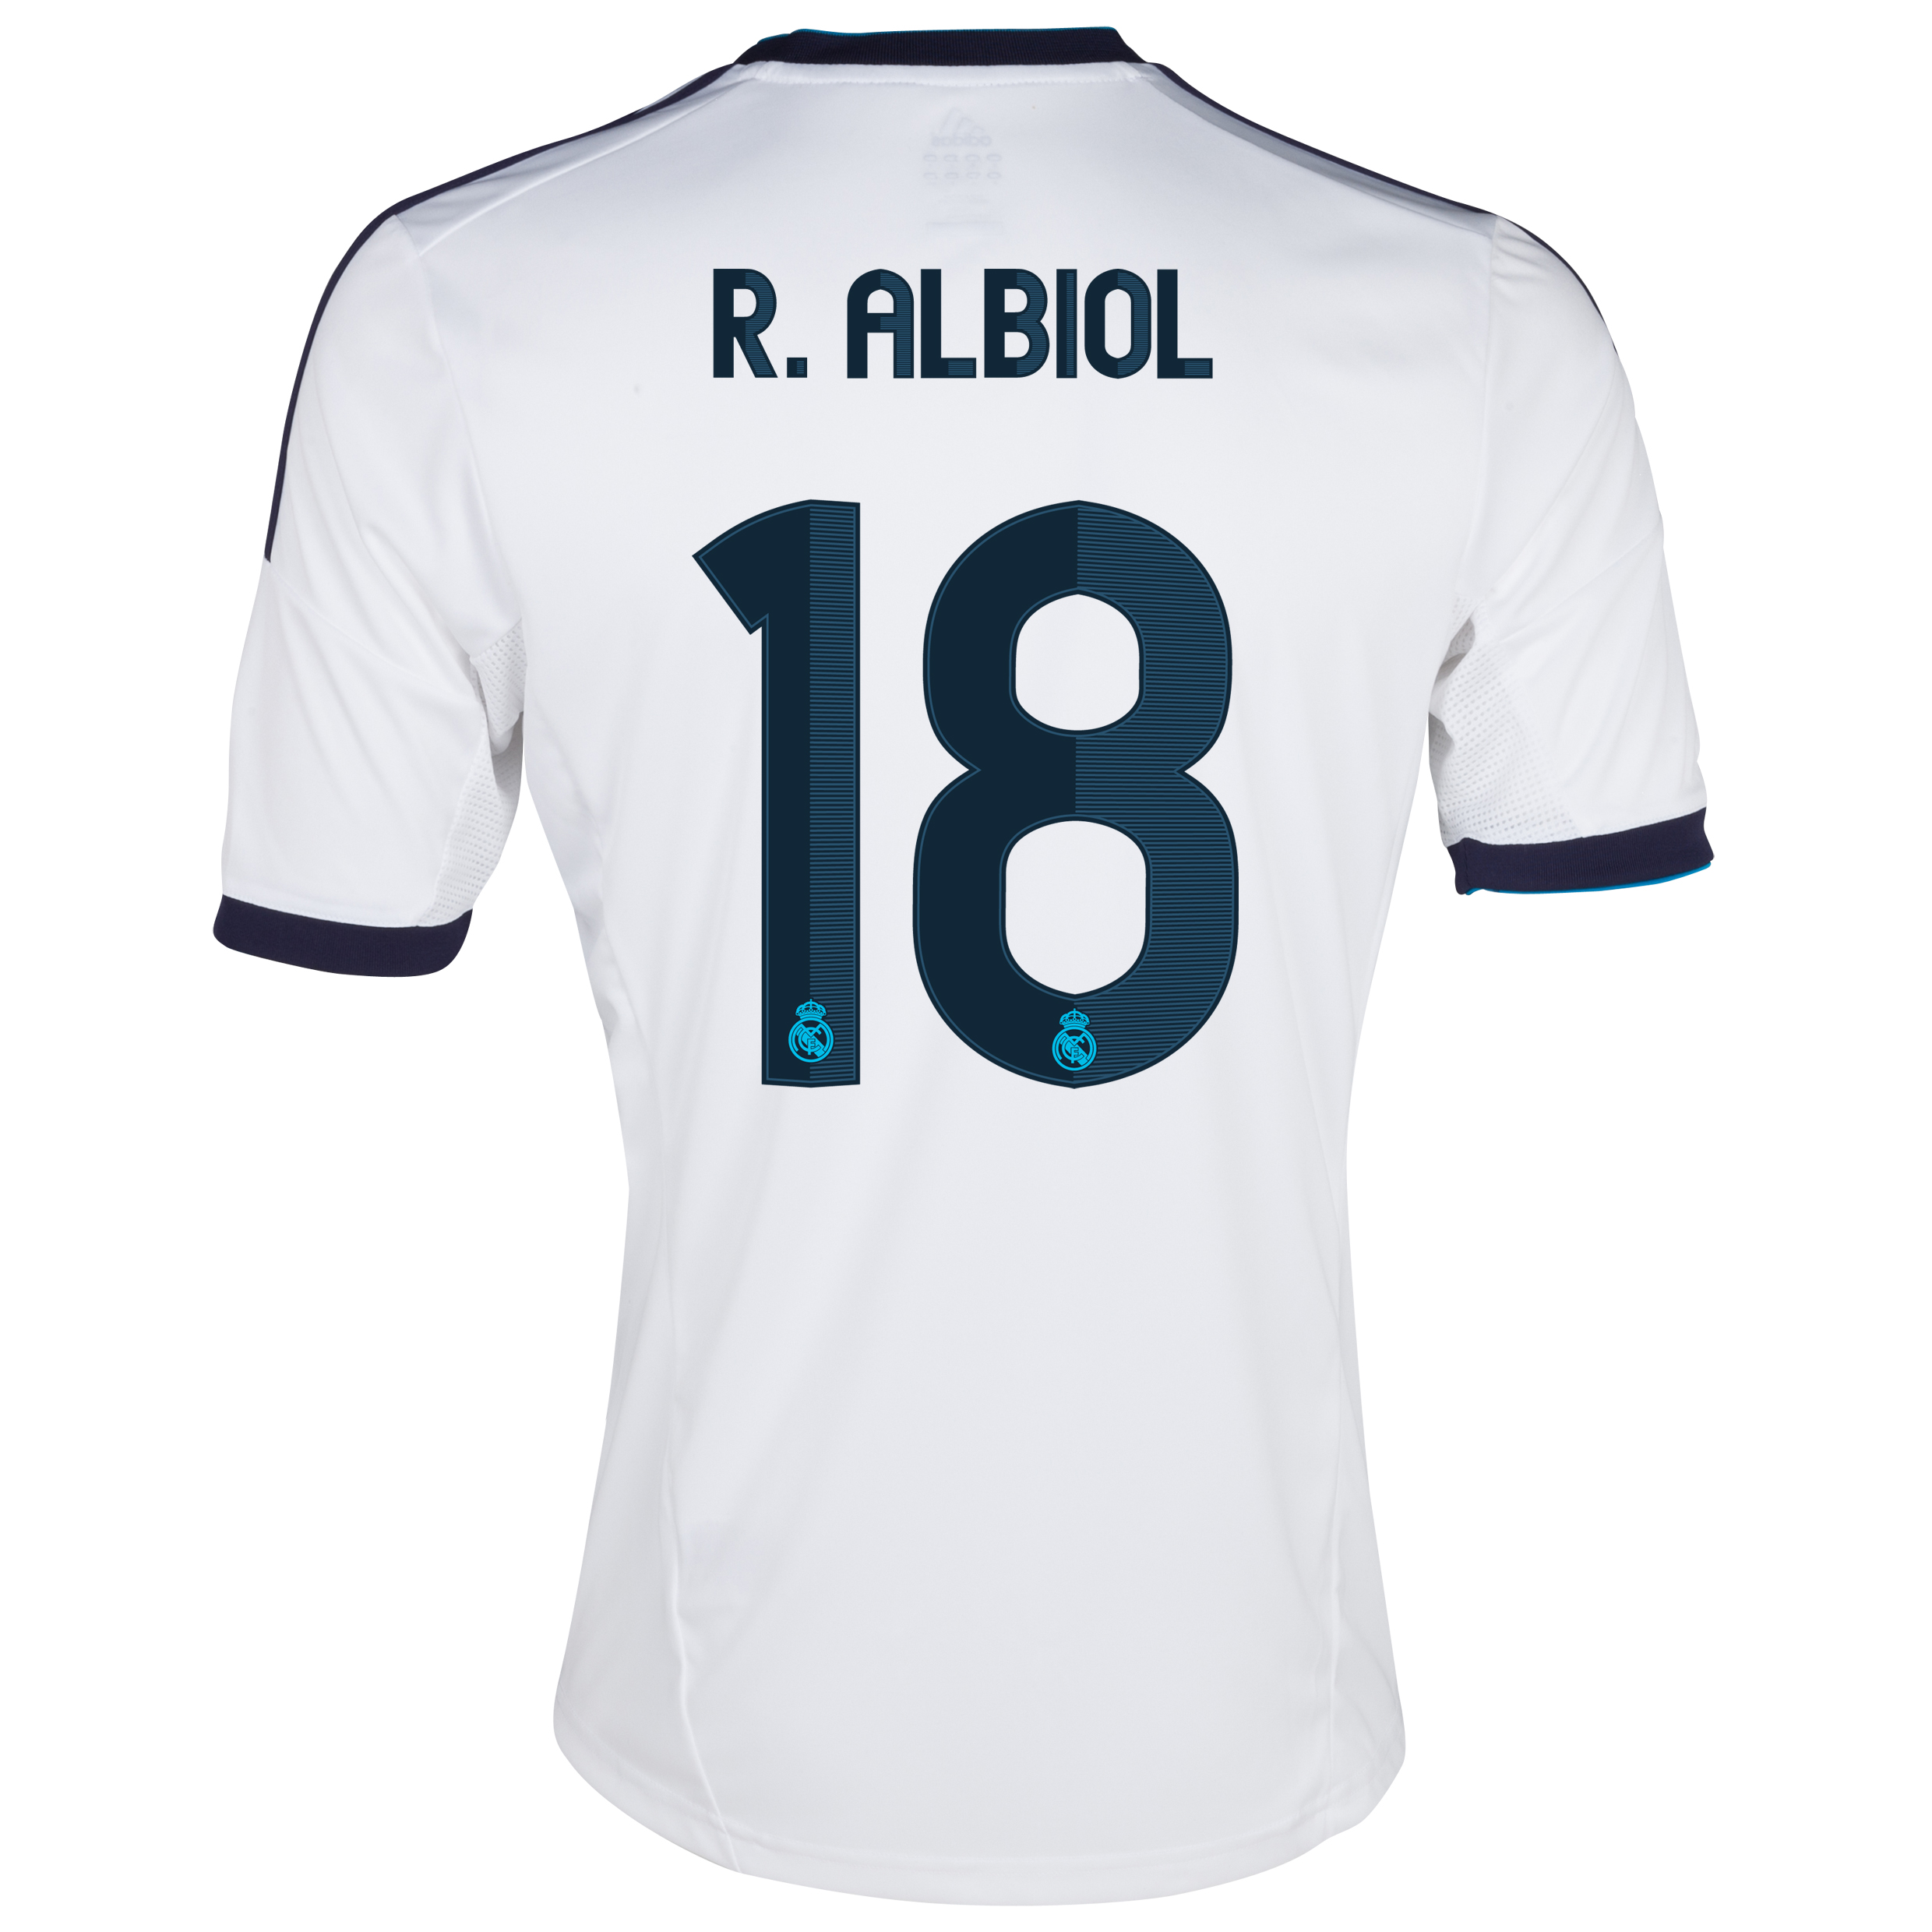 Camiseta 1 equipacin del Real Madrid 2012/13 Cadete con Albiol 18